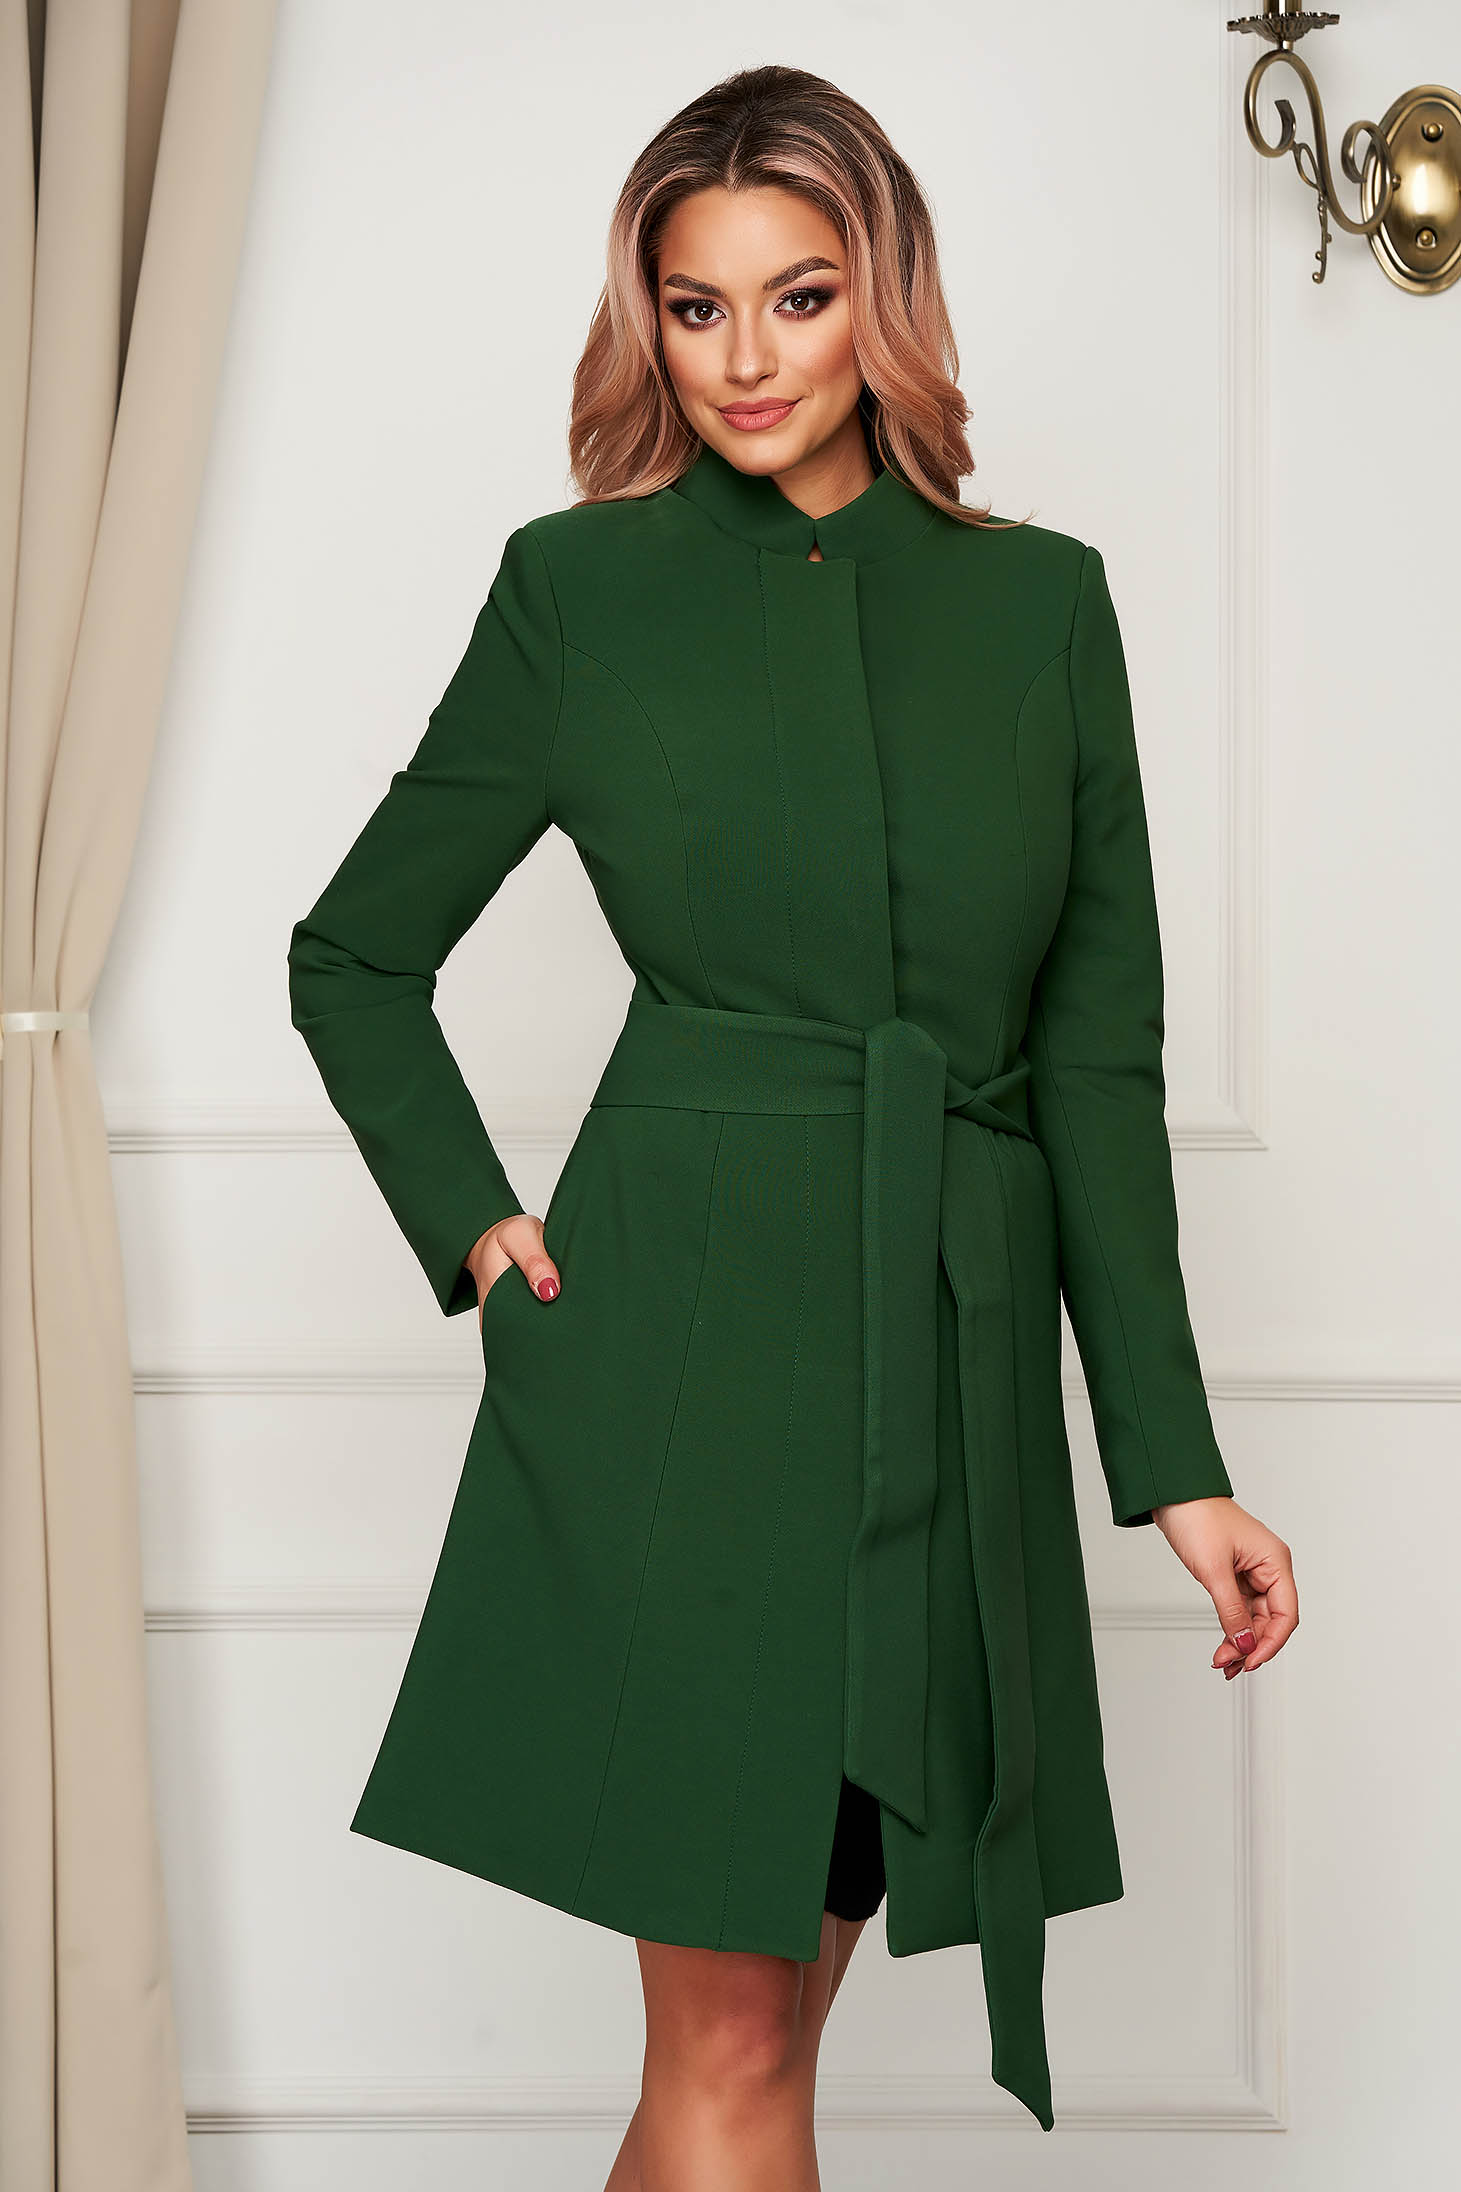 Cloche with inside lining accessorized with tied waistband elegant with bow green overcoat